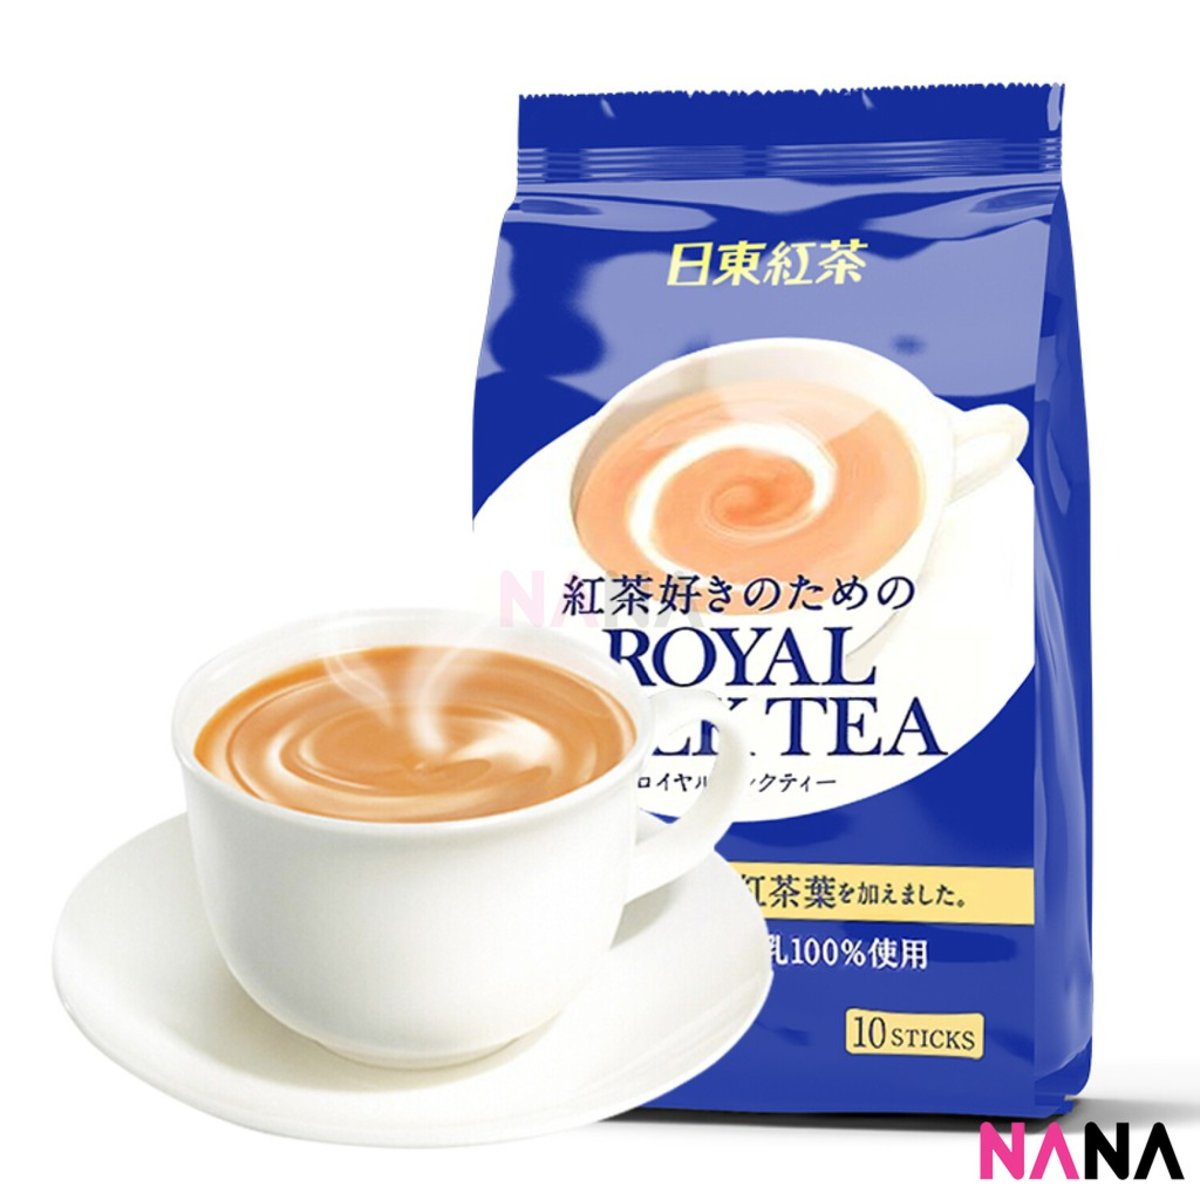 Instant Royal Milk Tea Powder - 100% Hokkaido Milk (10 Sticks)